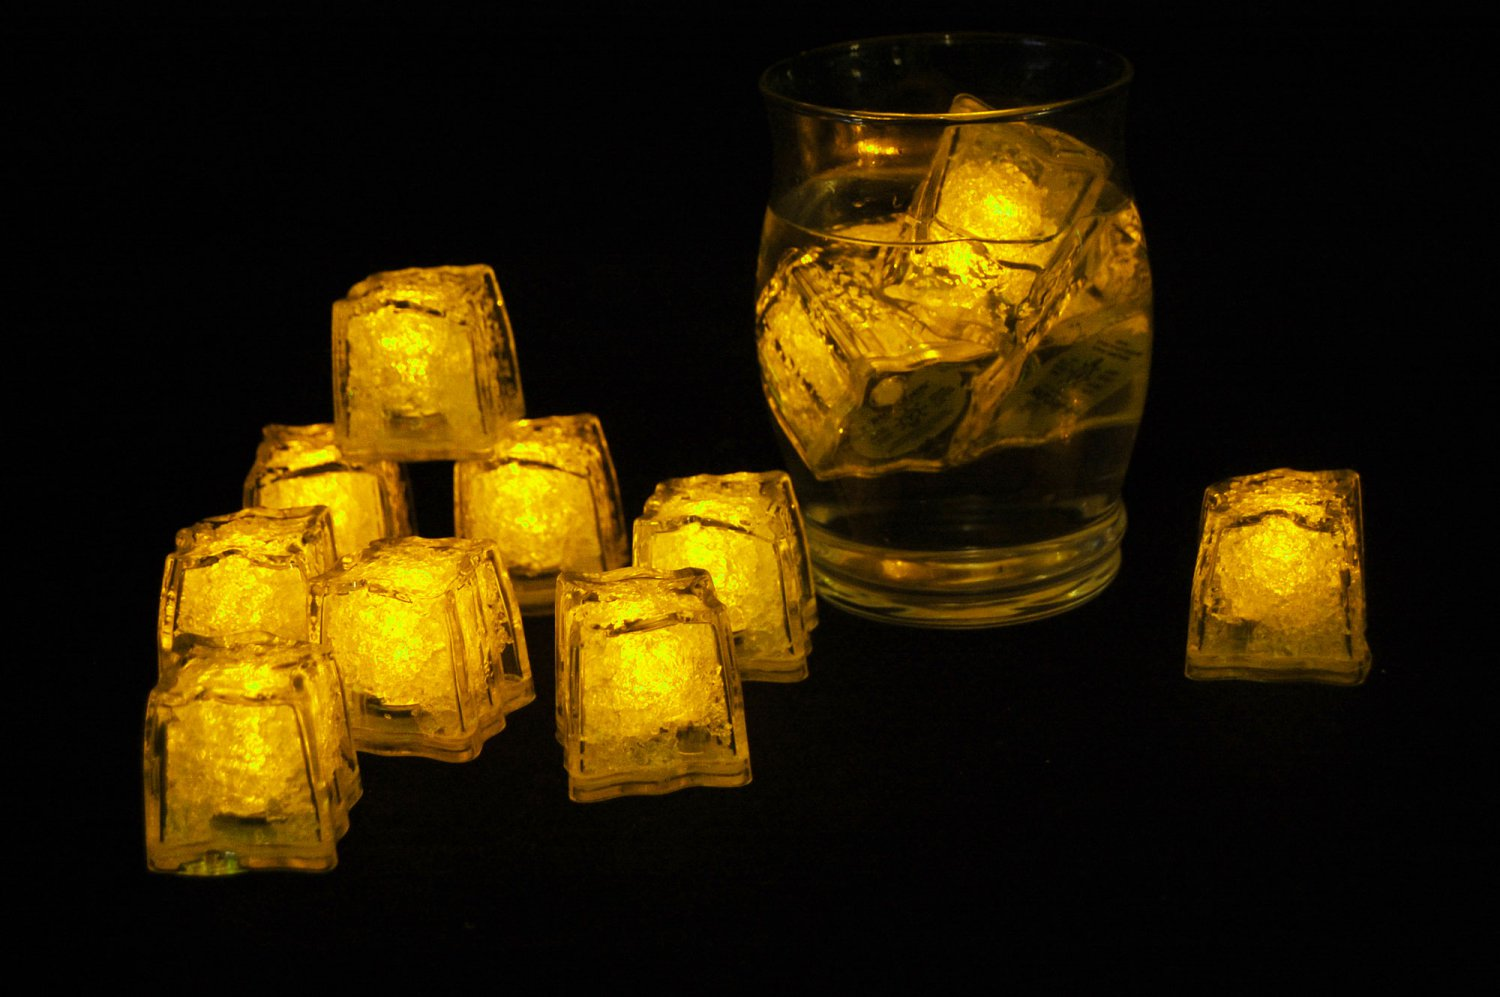 Set of 12 Litecubes  Brand Jewel Color Tinted Topaz Yellow Light up LED Ice Cubes